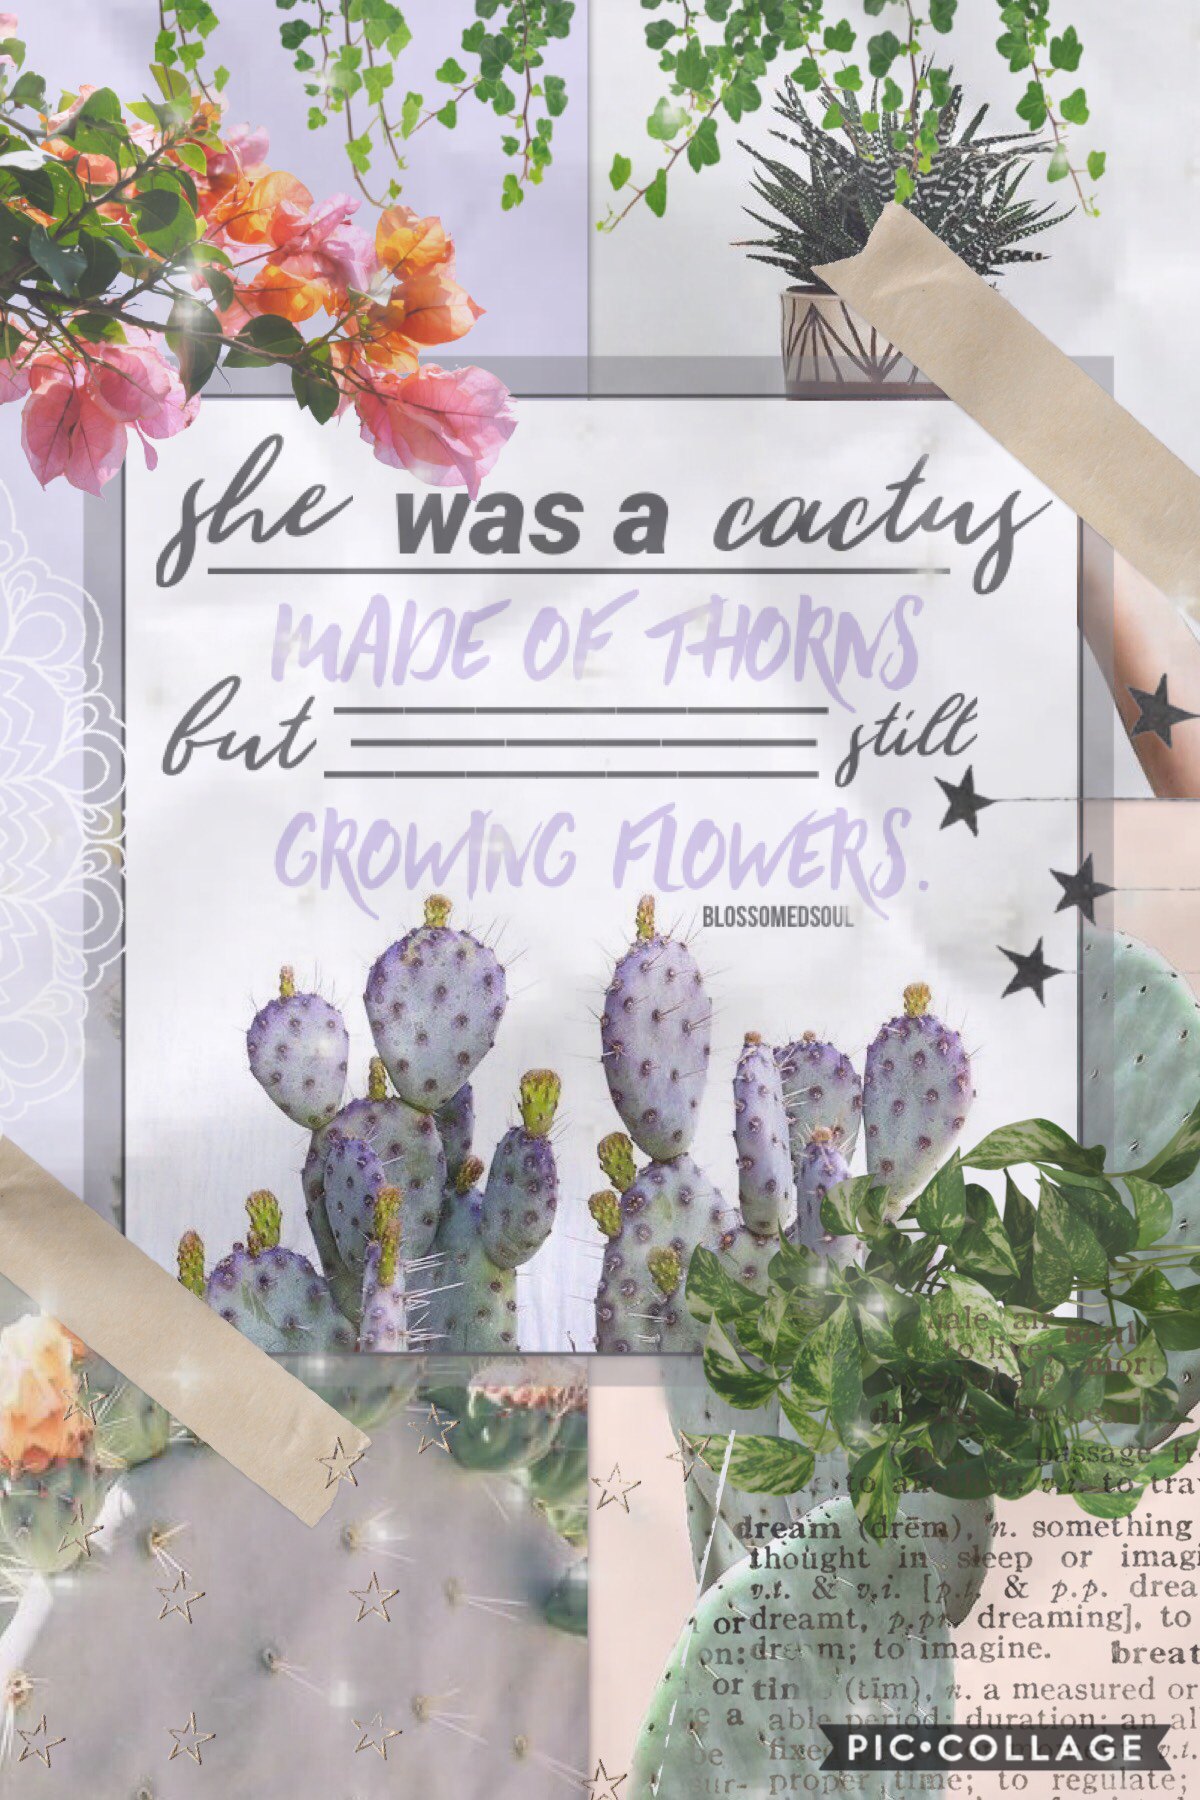 t a p  first collage of my new theme! qotd: do you like this new theme? ♥️